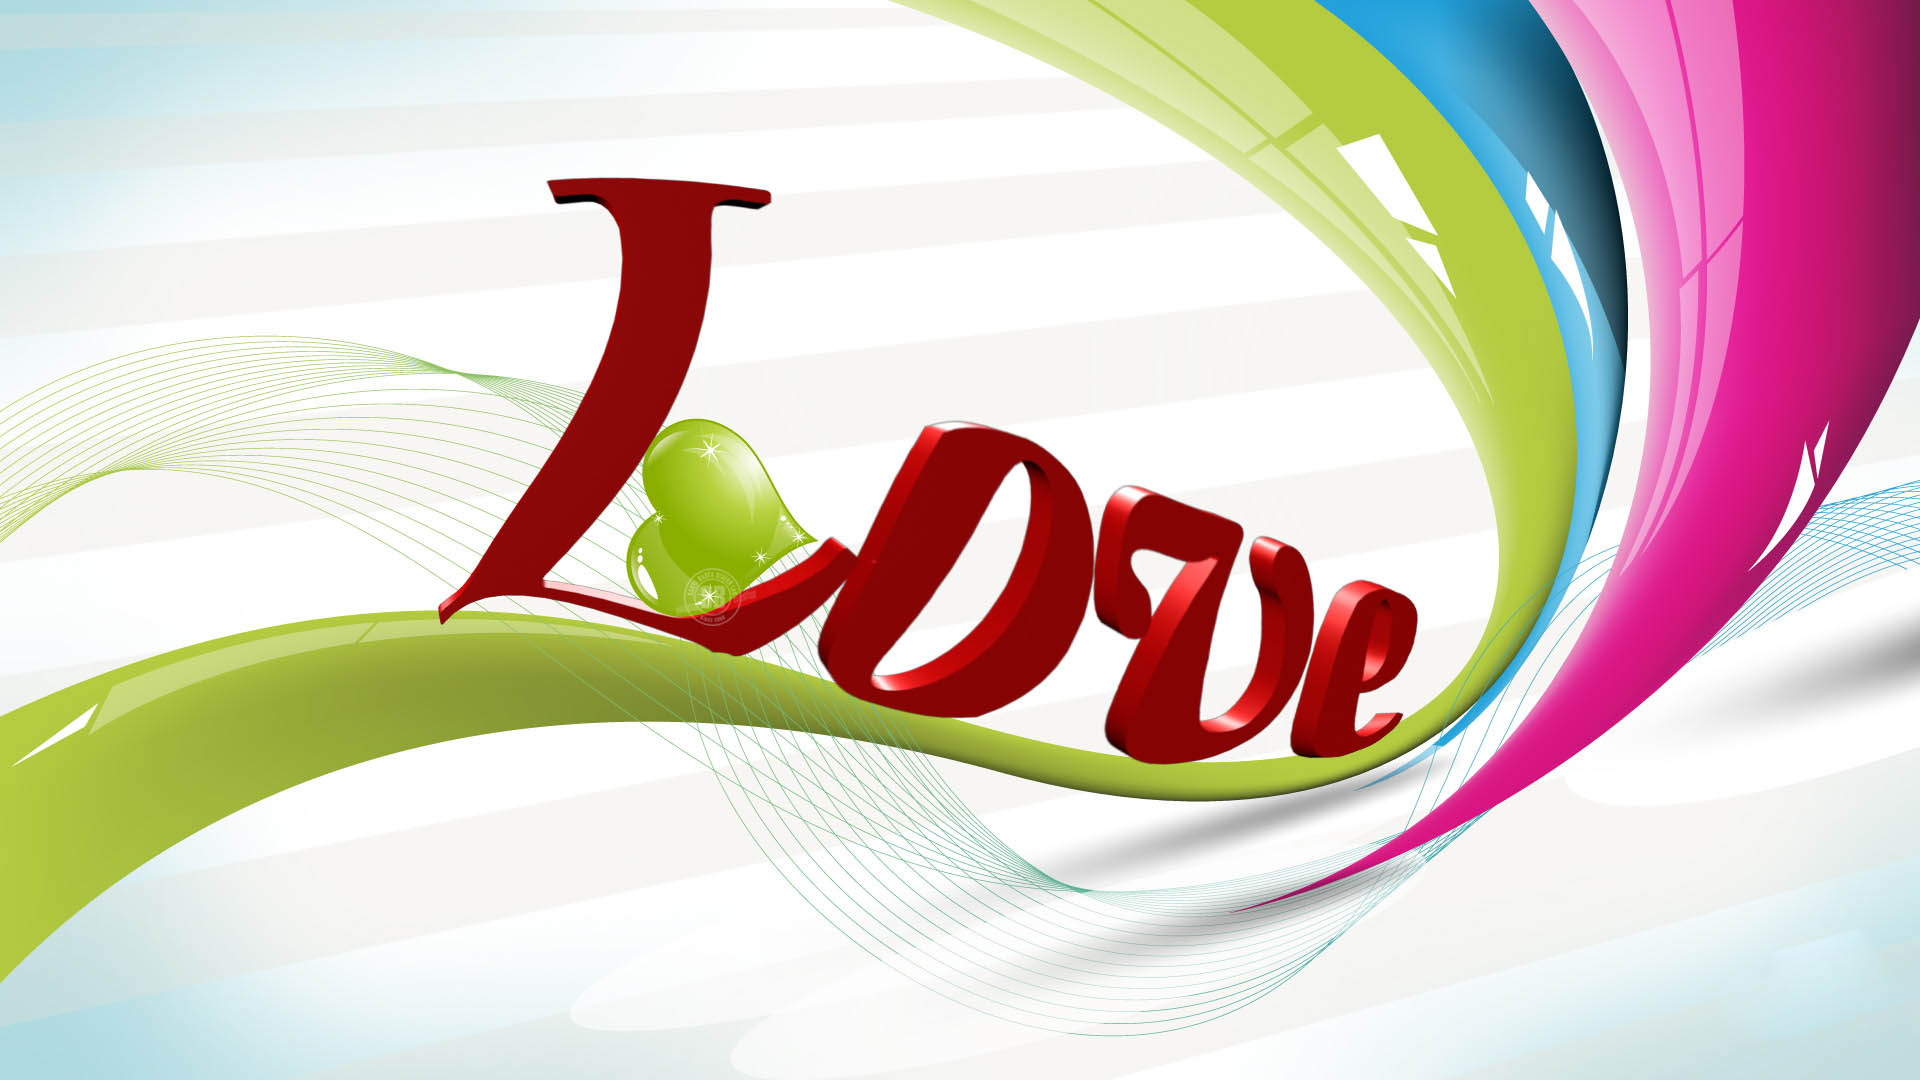 Love Wallpapers New Latest : New Love Wallpaper - WallpaperSafari